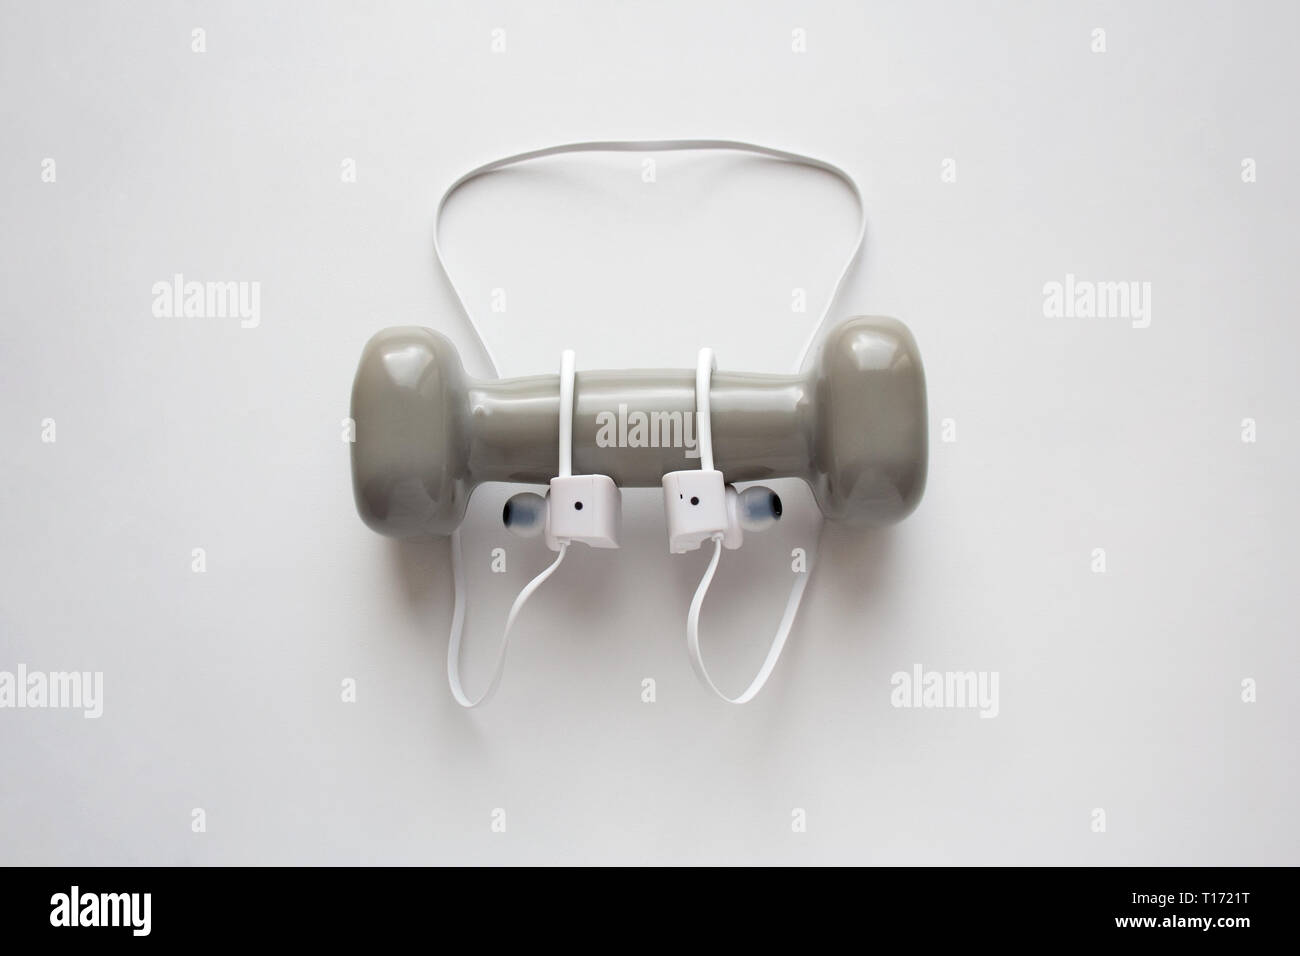 White sport wireless earbuds with grey dumbbell isolated on white background - Stock Image